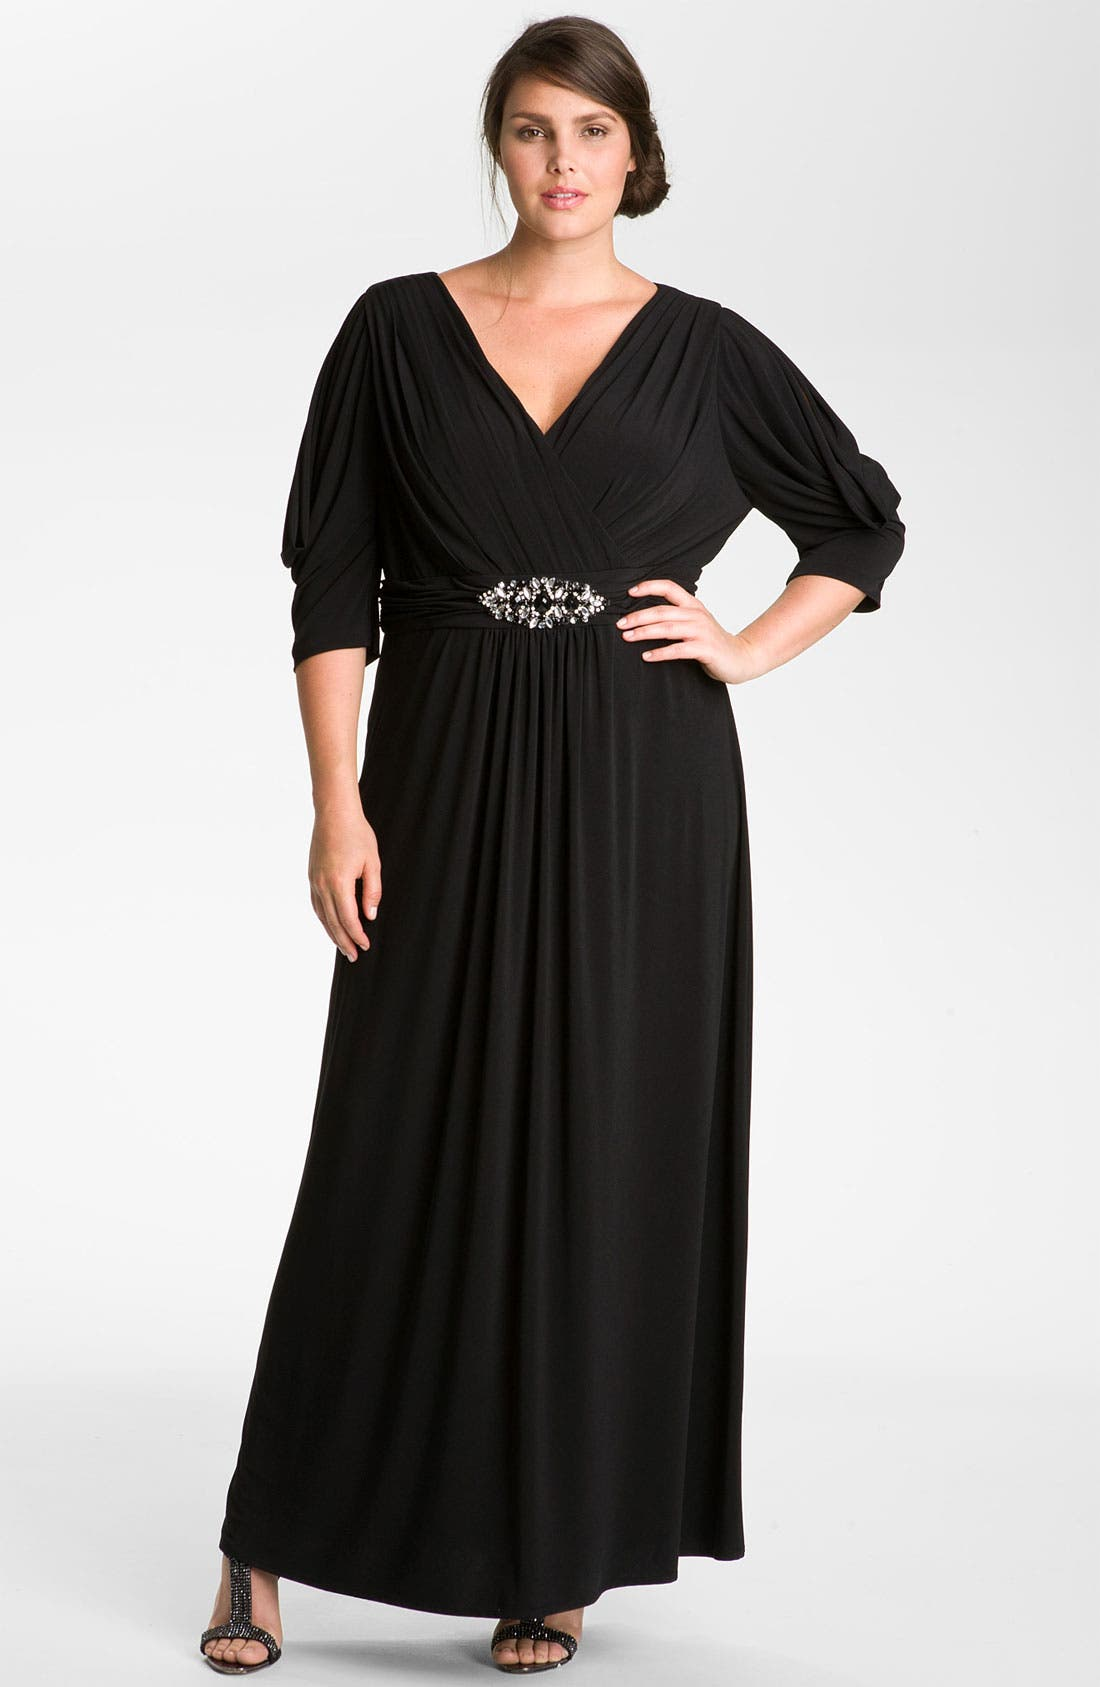 Alternate Image 1 Selected - Eliza J Embellished Matte Jersey Surplice Dress (Plus)